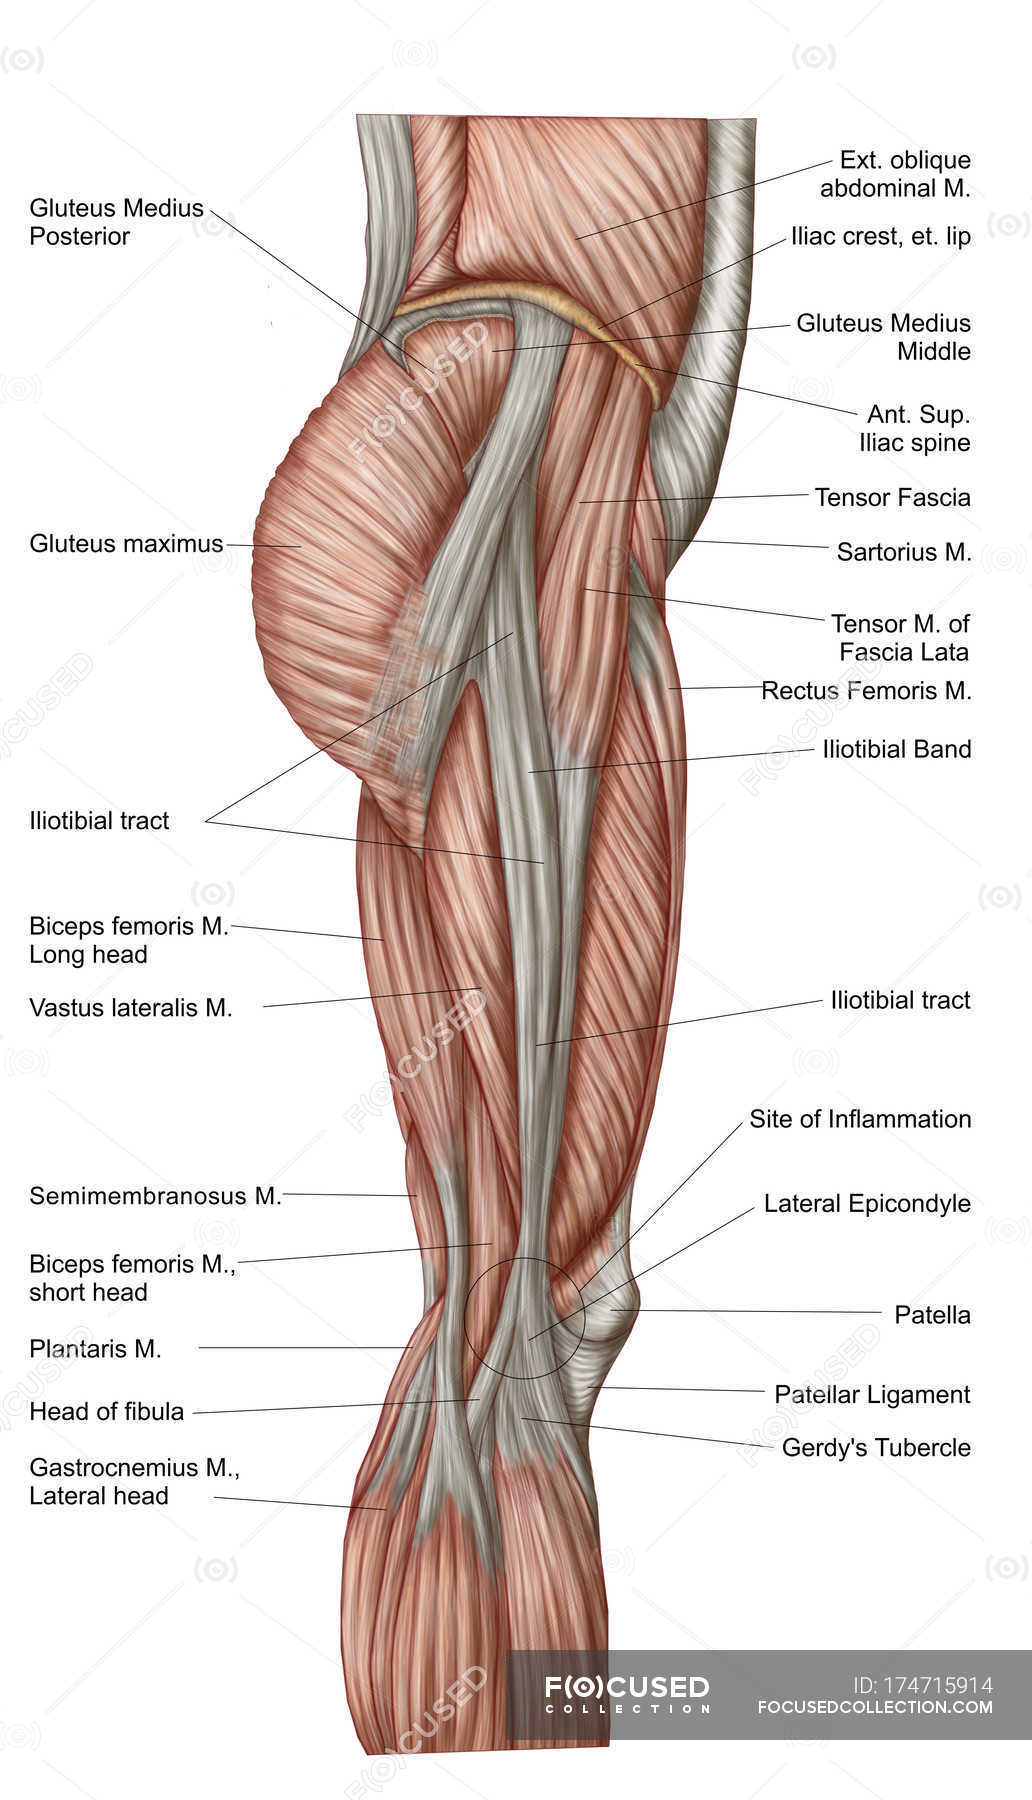 Anatomy of human thigh muscles with labels — Stock Photo   #174715914